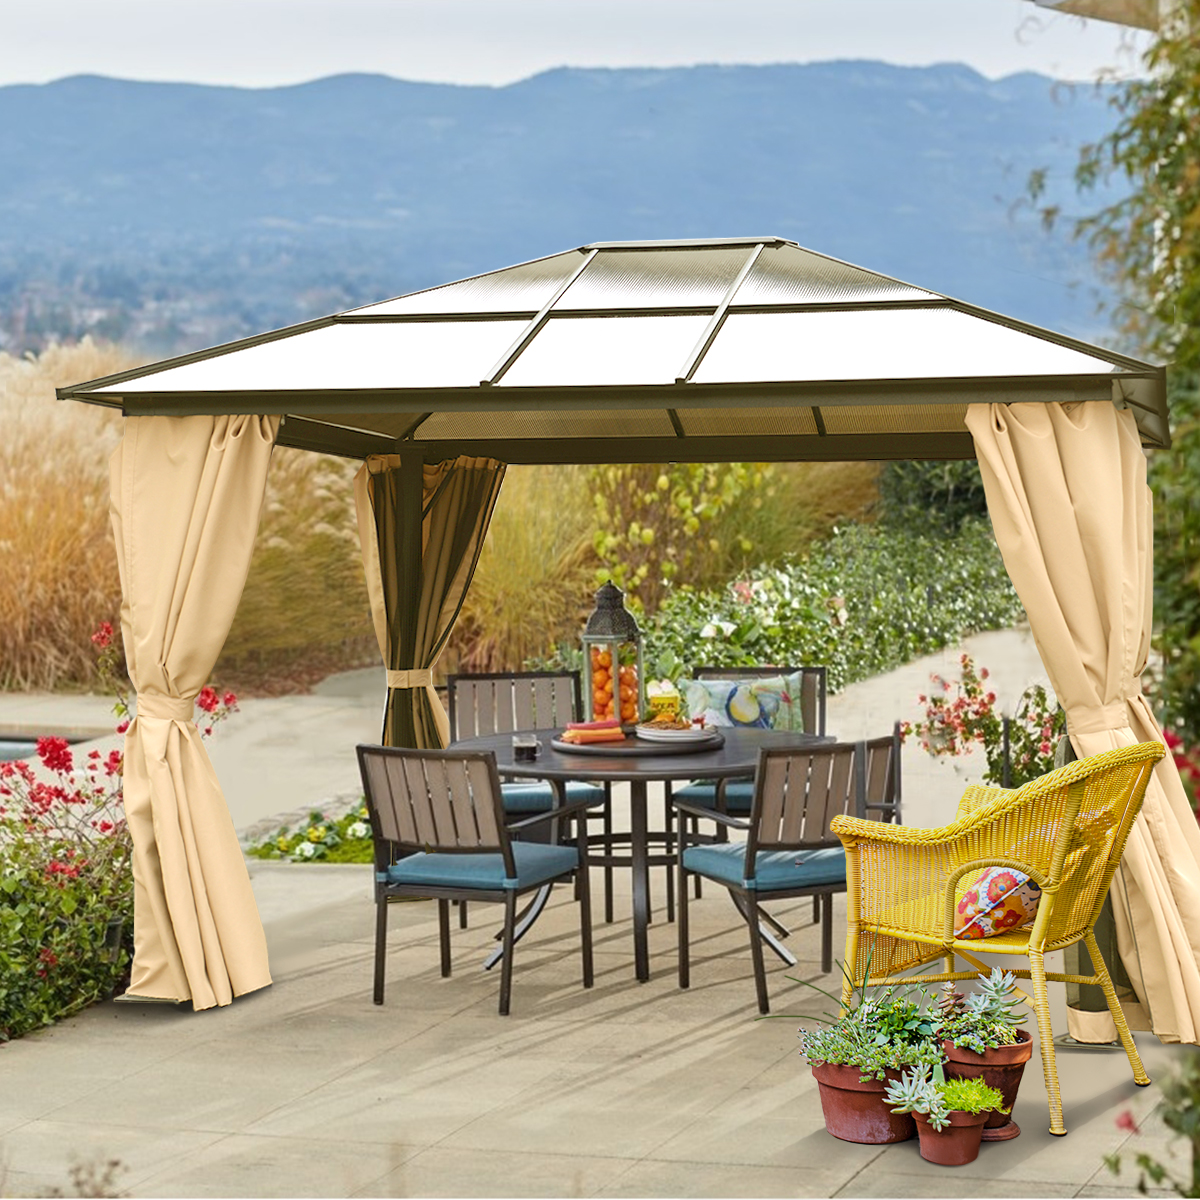 10' x 12' Outdoor Backyard Patio Gazebo Polycarbonate, with Panel Roof